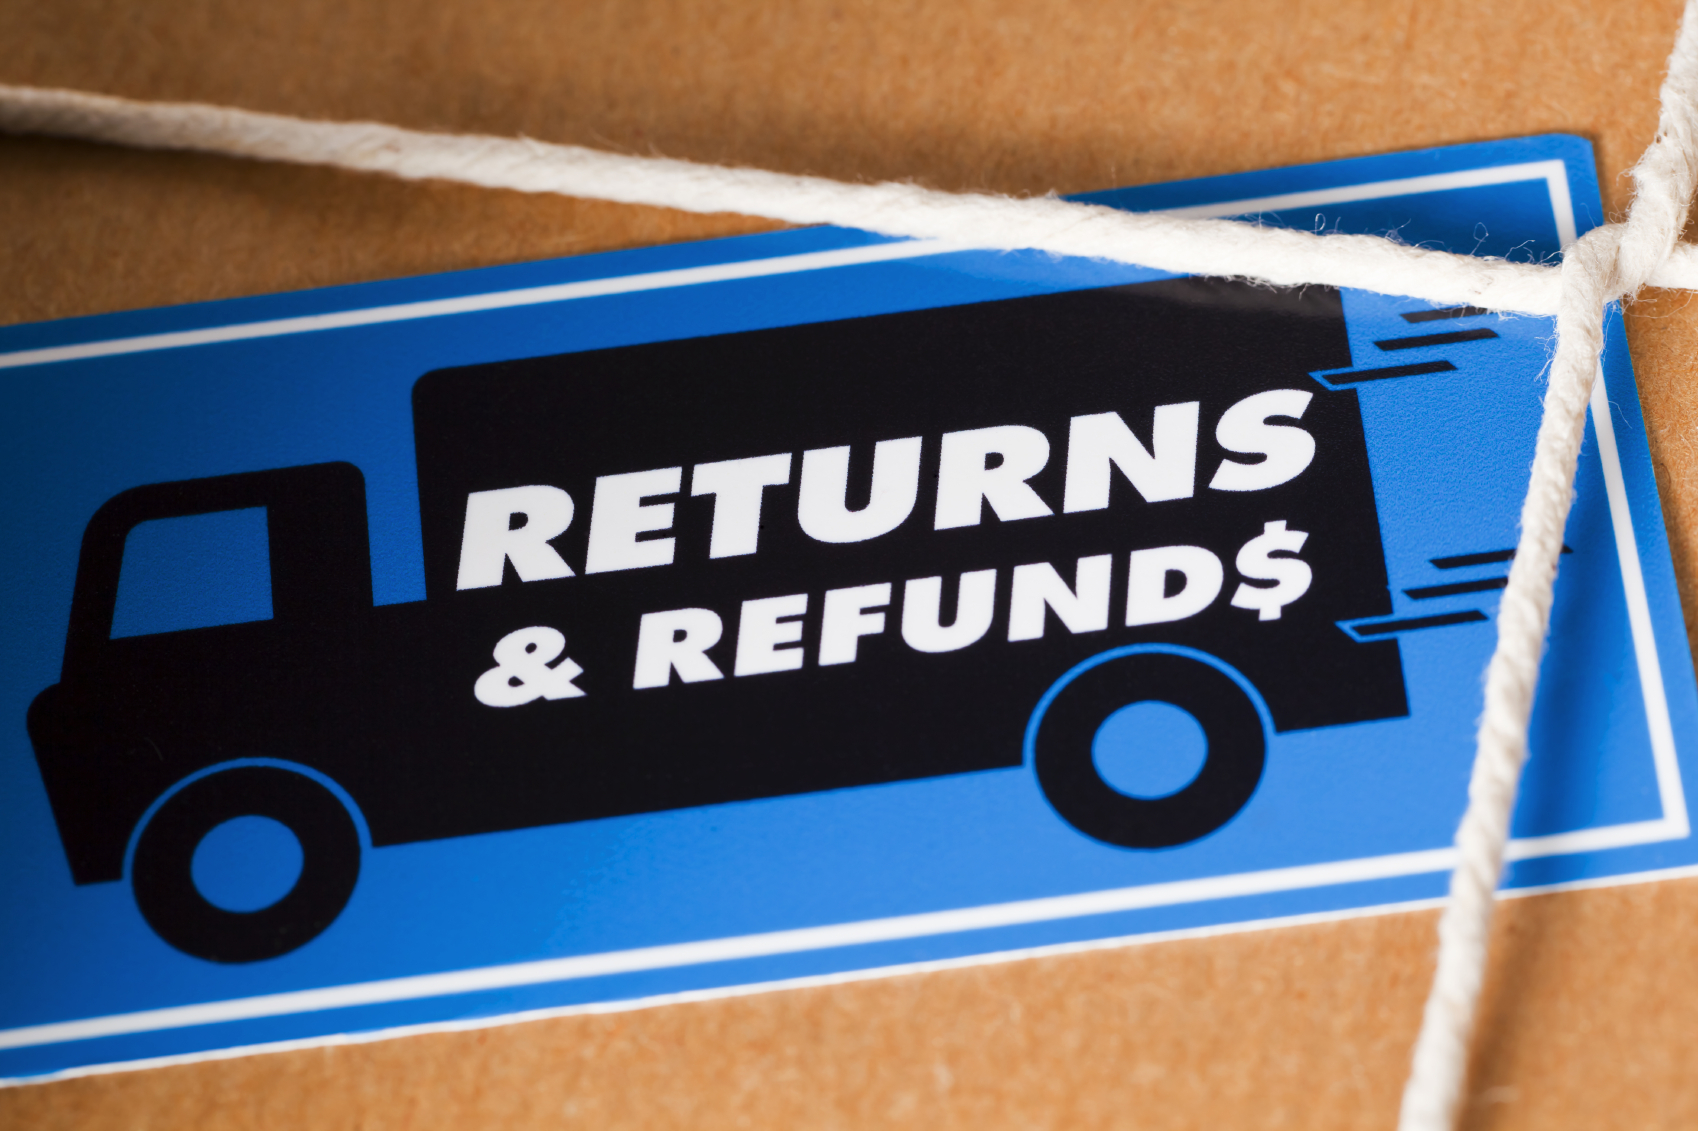 5a1371f81810 How to Deal with Product Returns in Retail - Vend Retail Blog